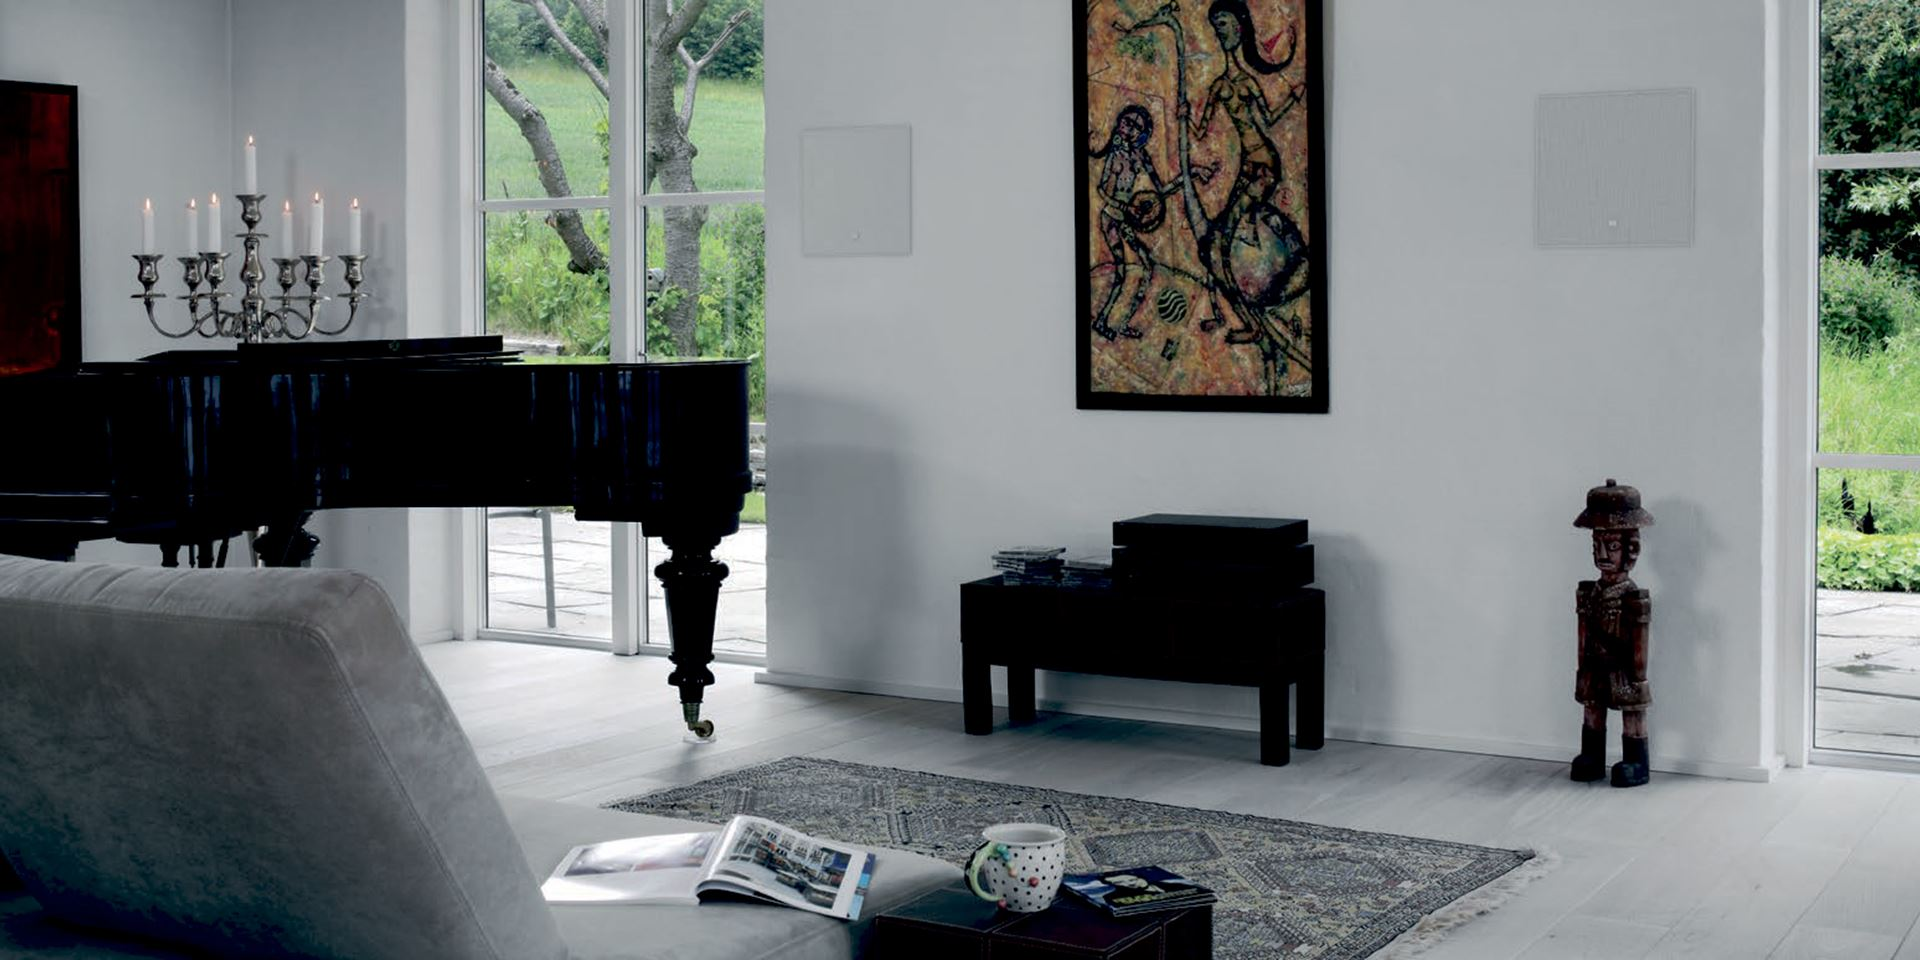 Two in-wall speakers in wall with a white grille next to a black piano in a modern living space